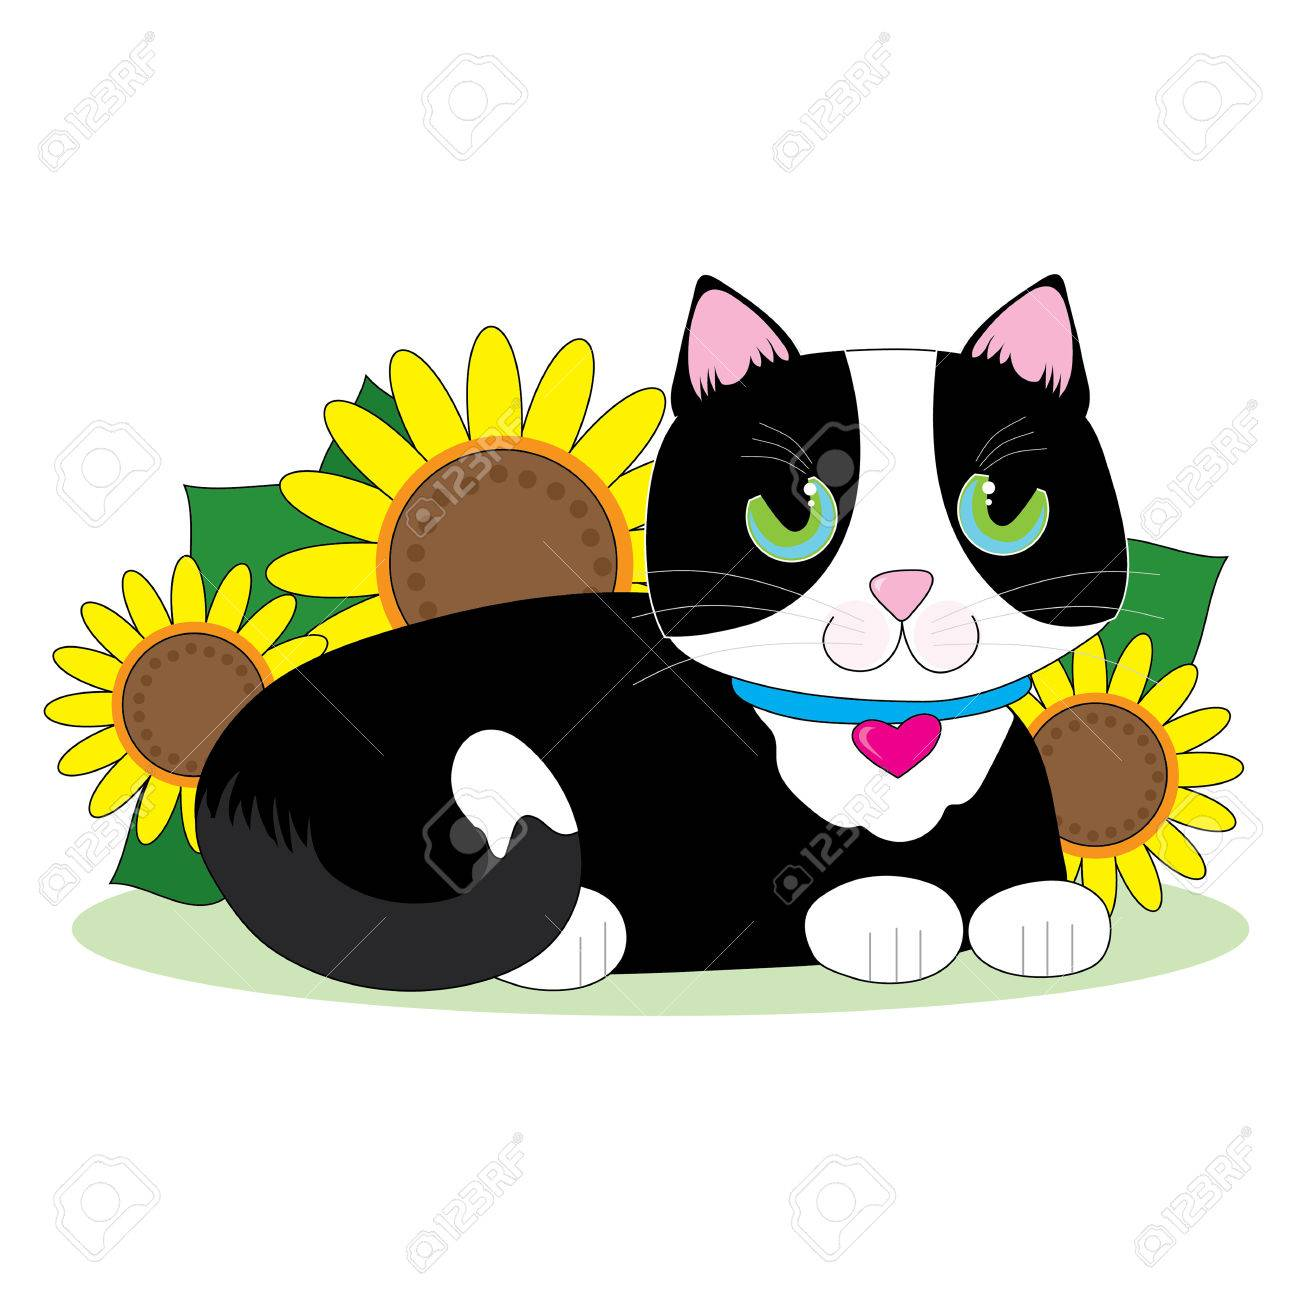 1300x1300 Black And White Tuxedo Cat Lying Down In A Bed Of Sunflowers